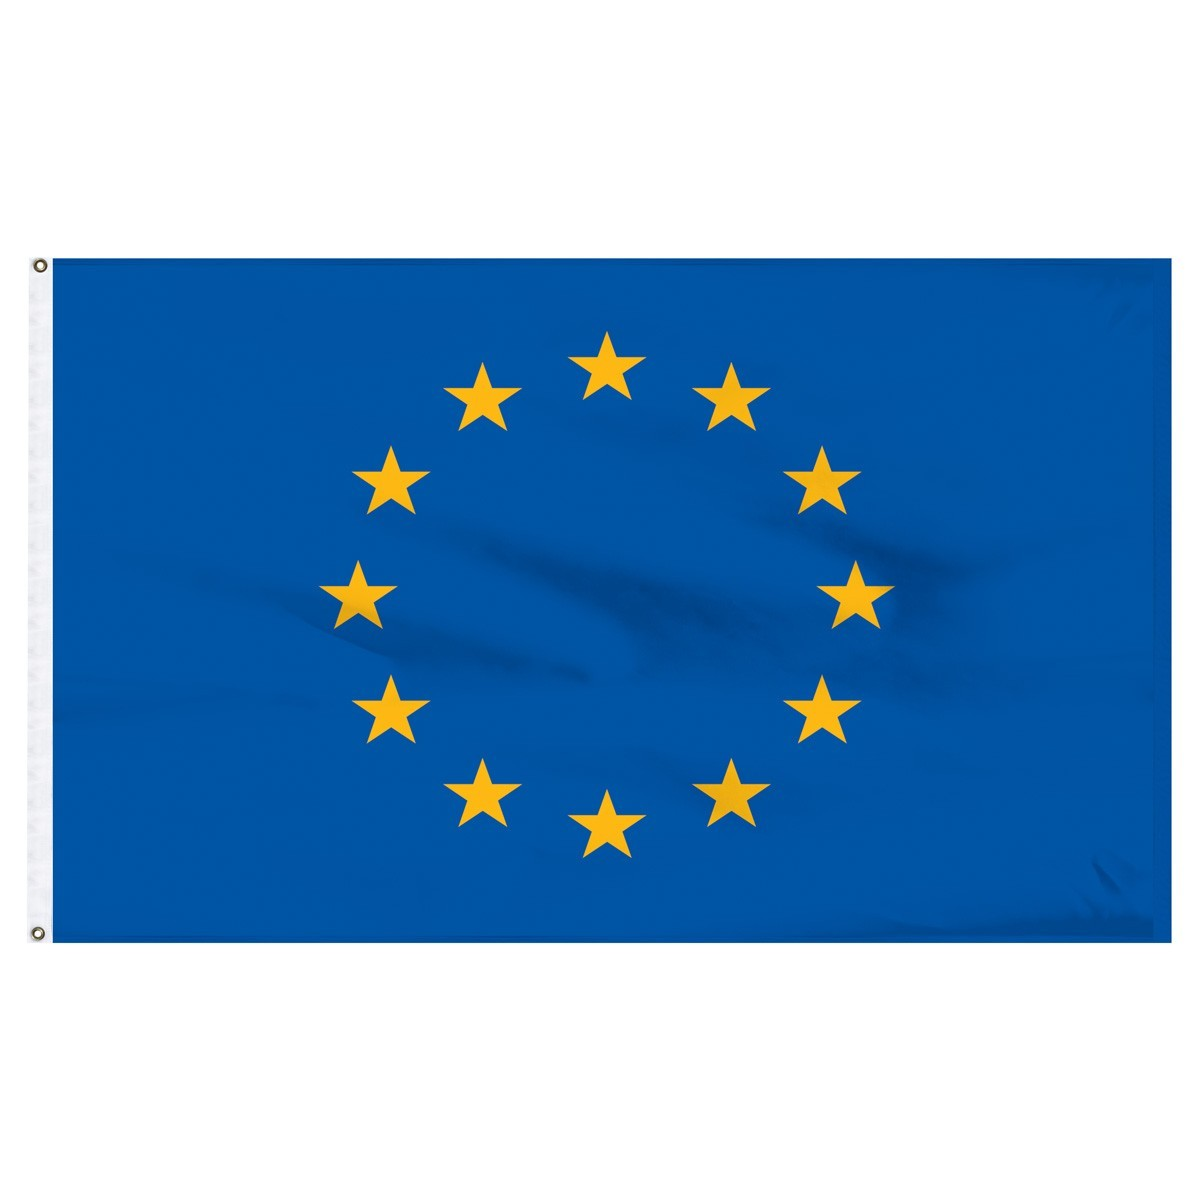 European Union 4' x 6' Outdoor Nylon Flag